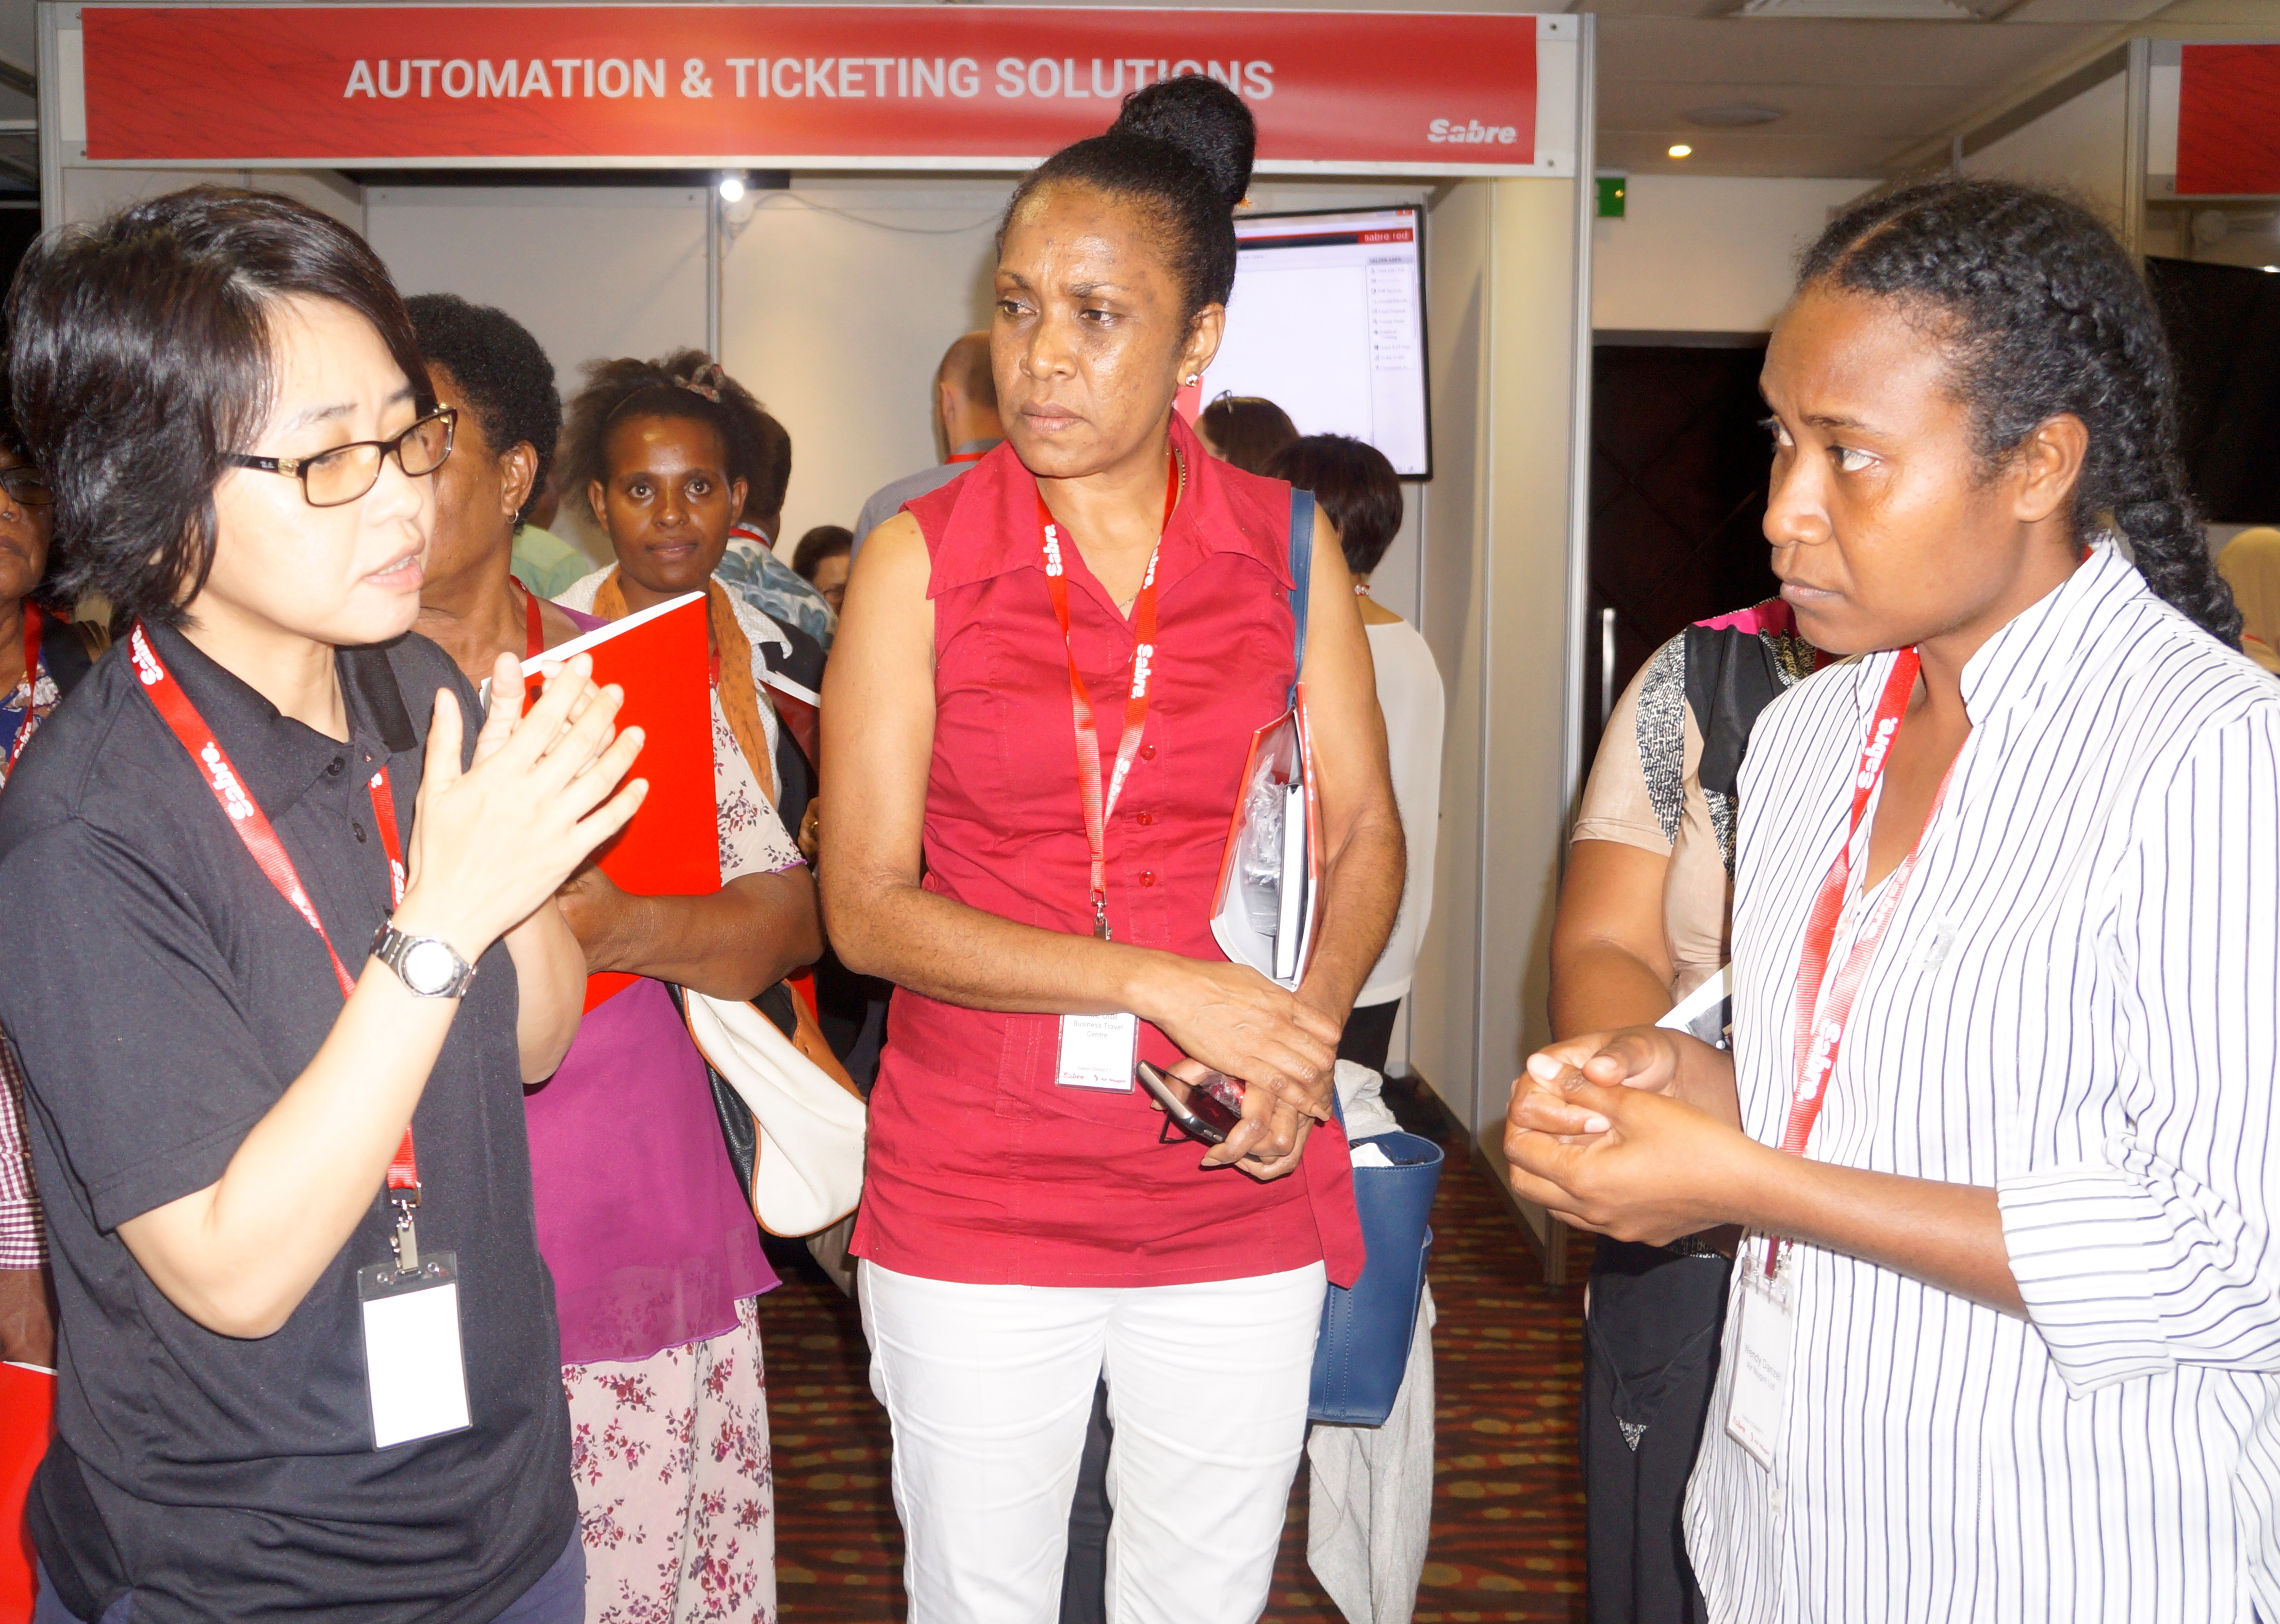 Air Niugini and Sabre co-hosted programme for Travel Agents